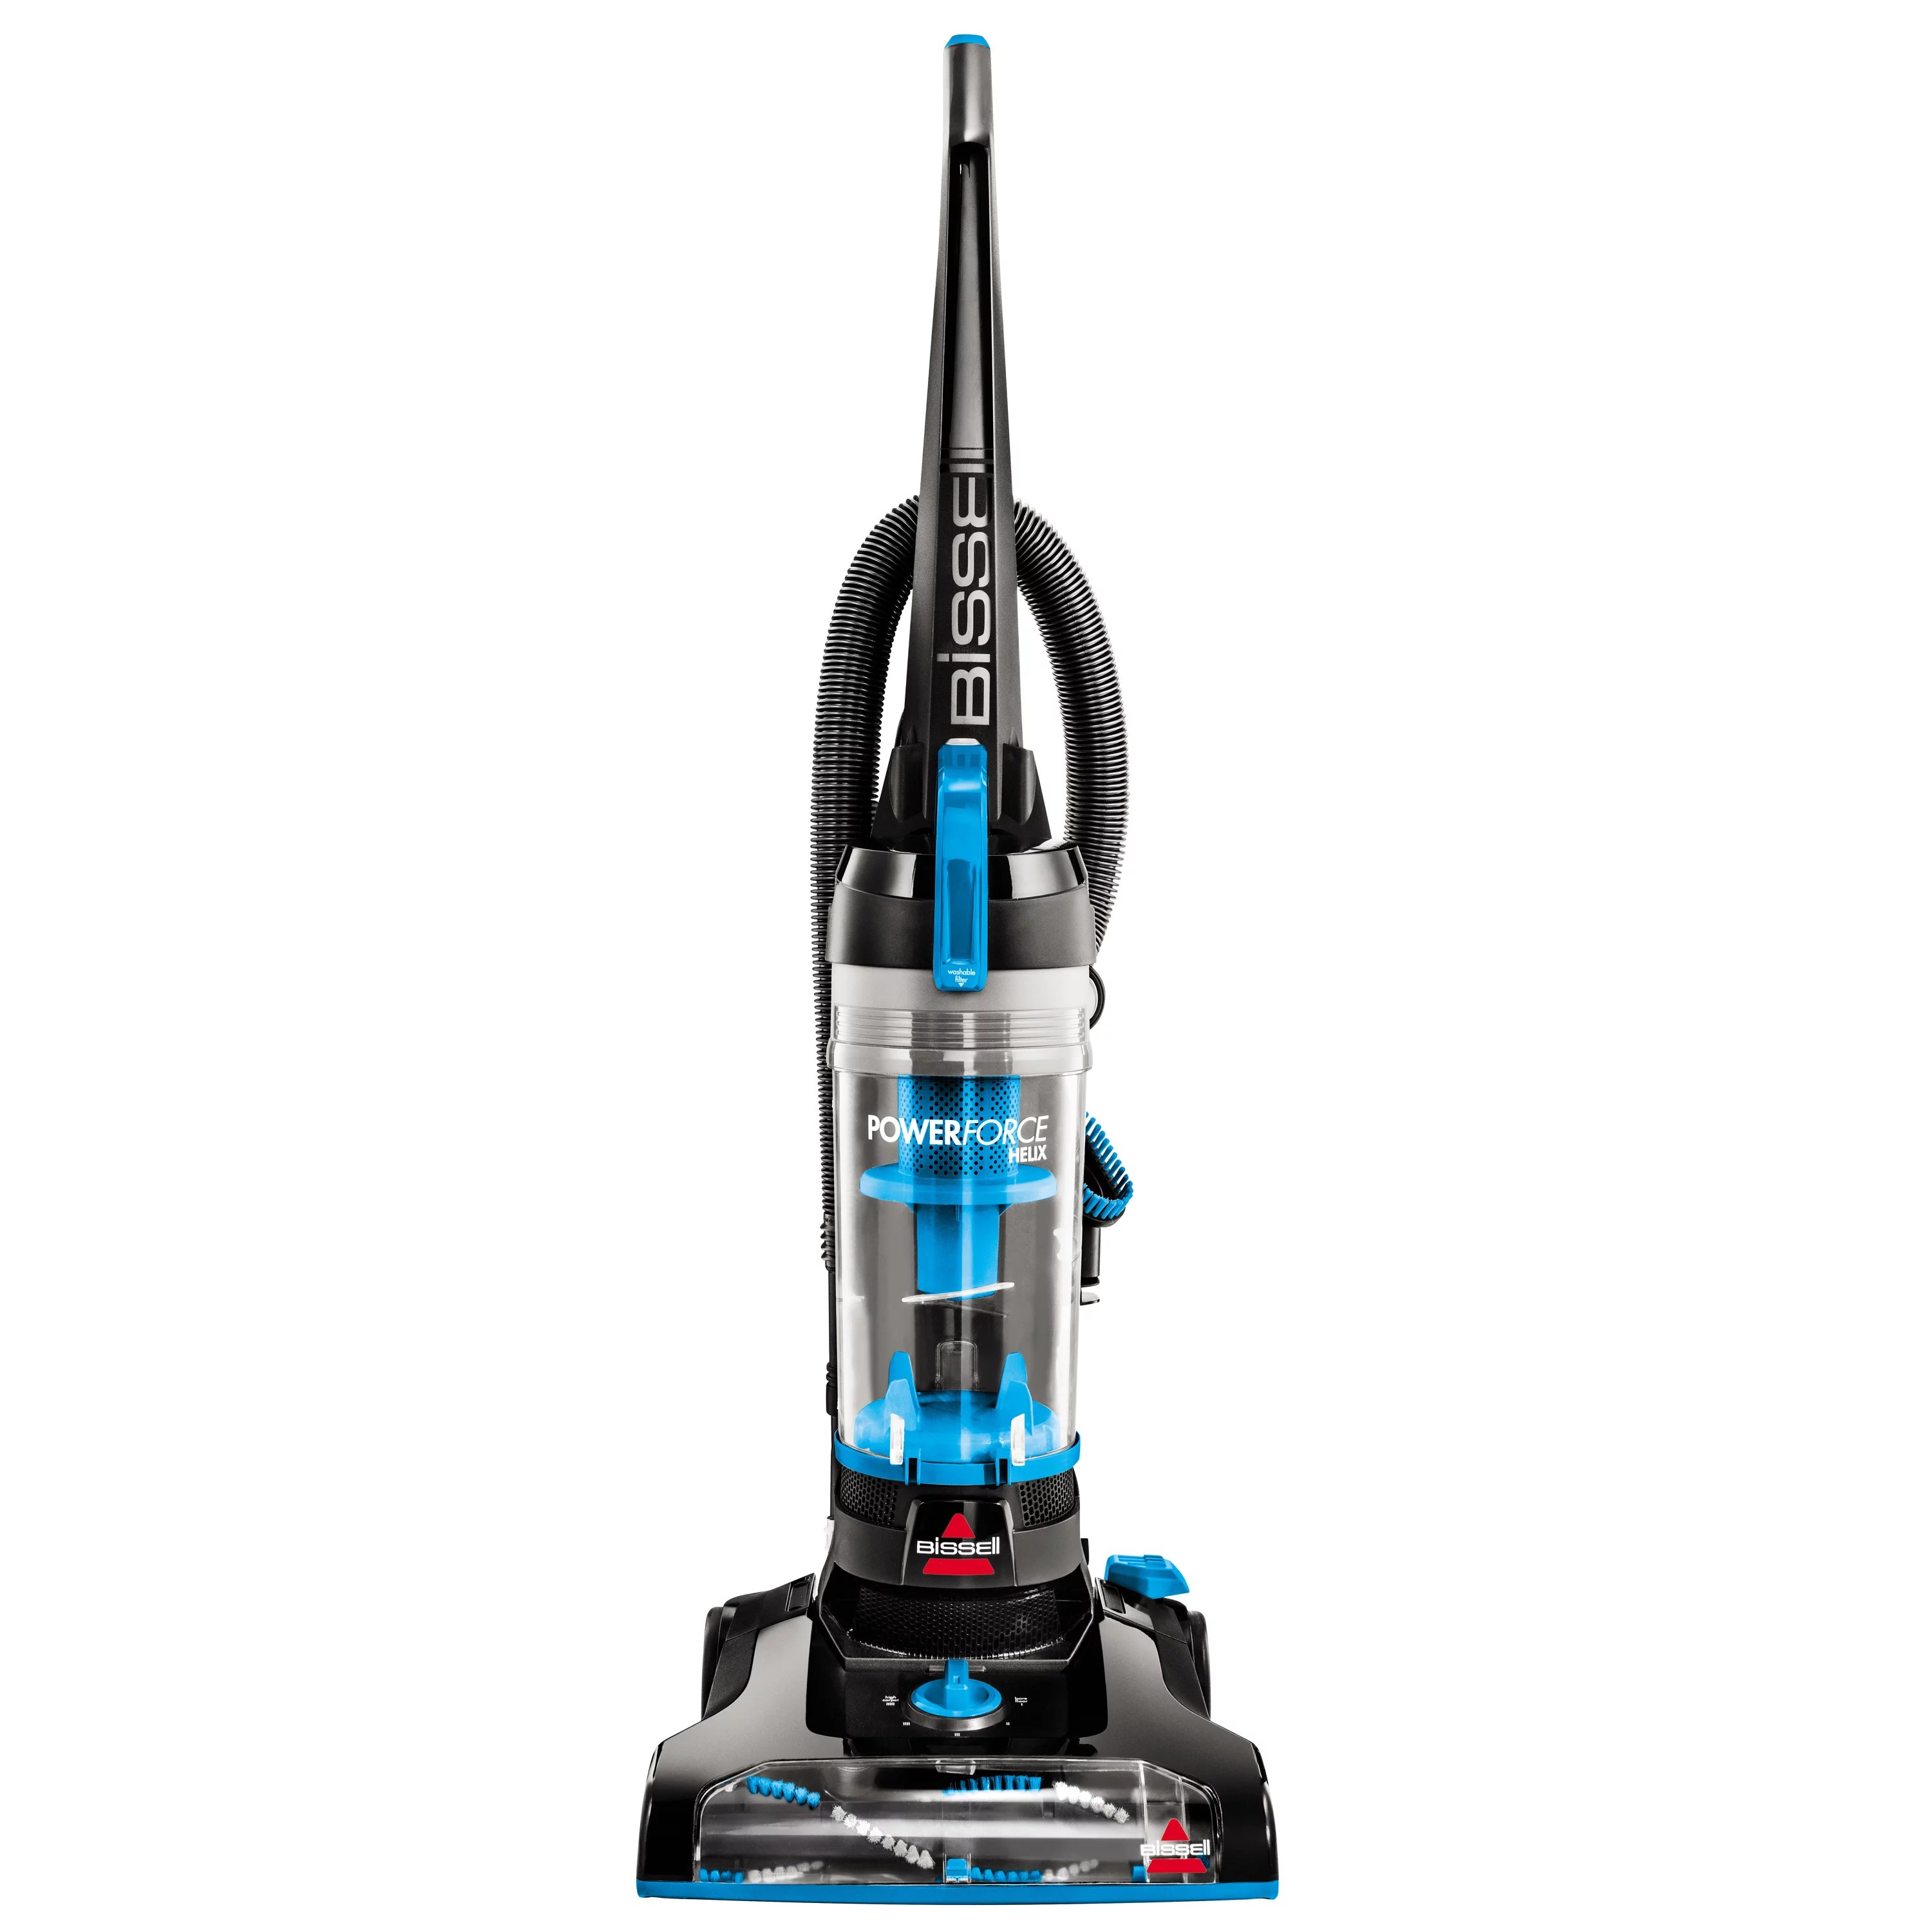 medium resolution of bissell powerforce helix bagless upright vacuum new version of 1700 wiring diagram for bissell vacuum cleaner